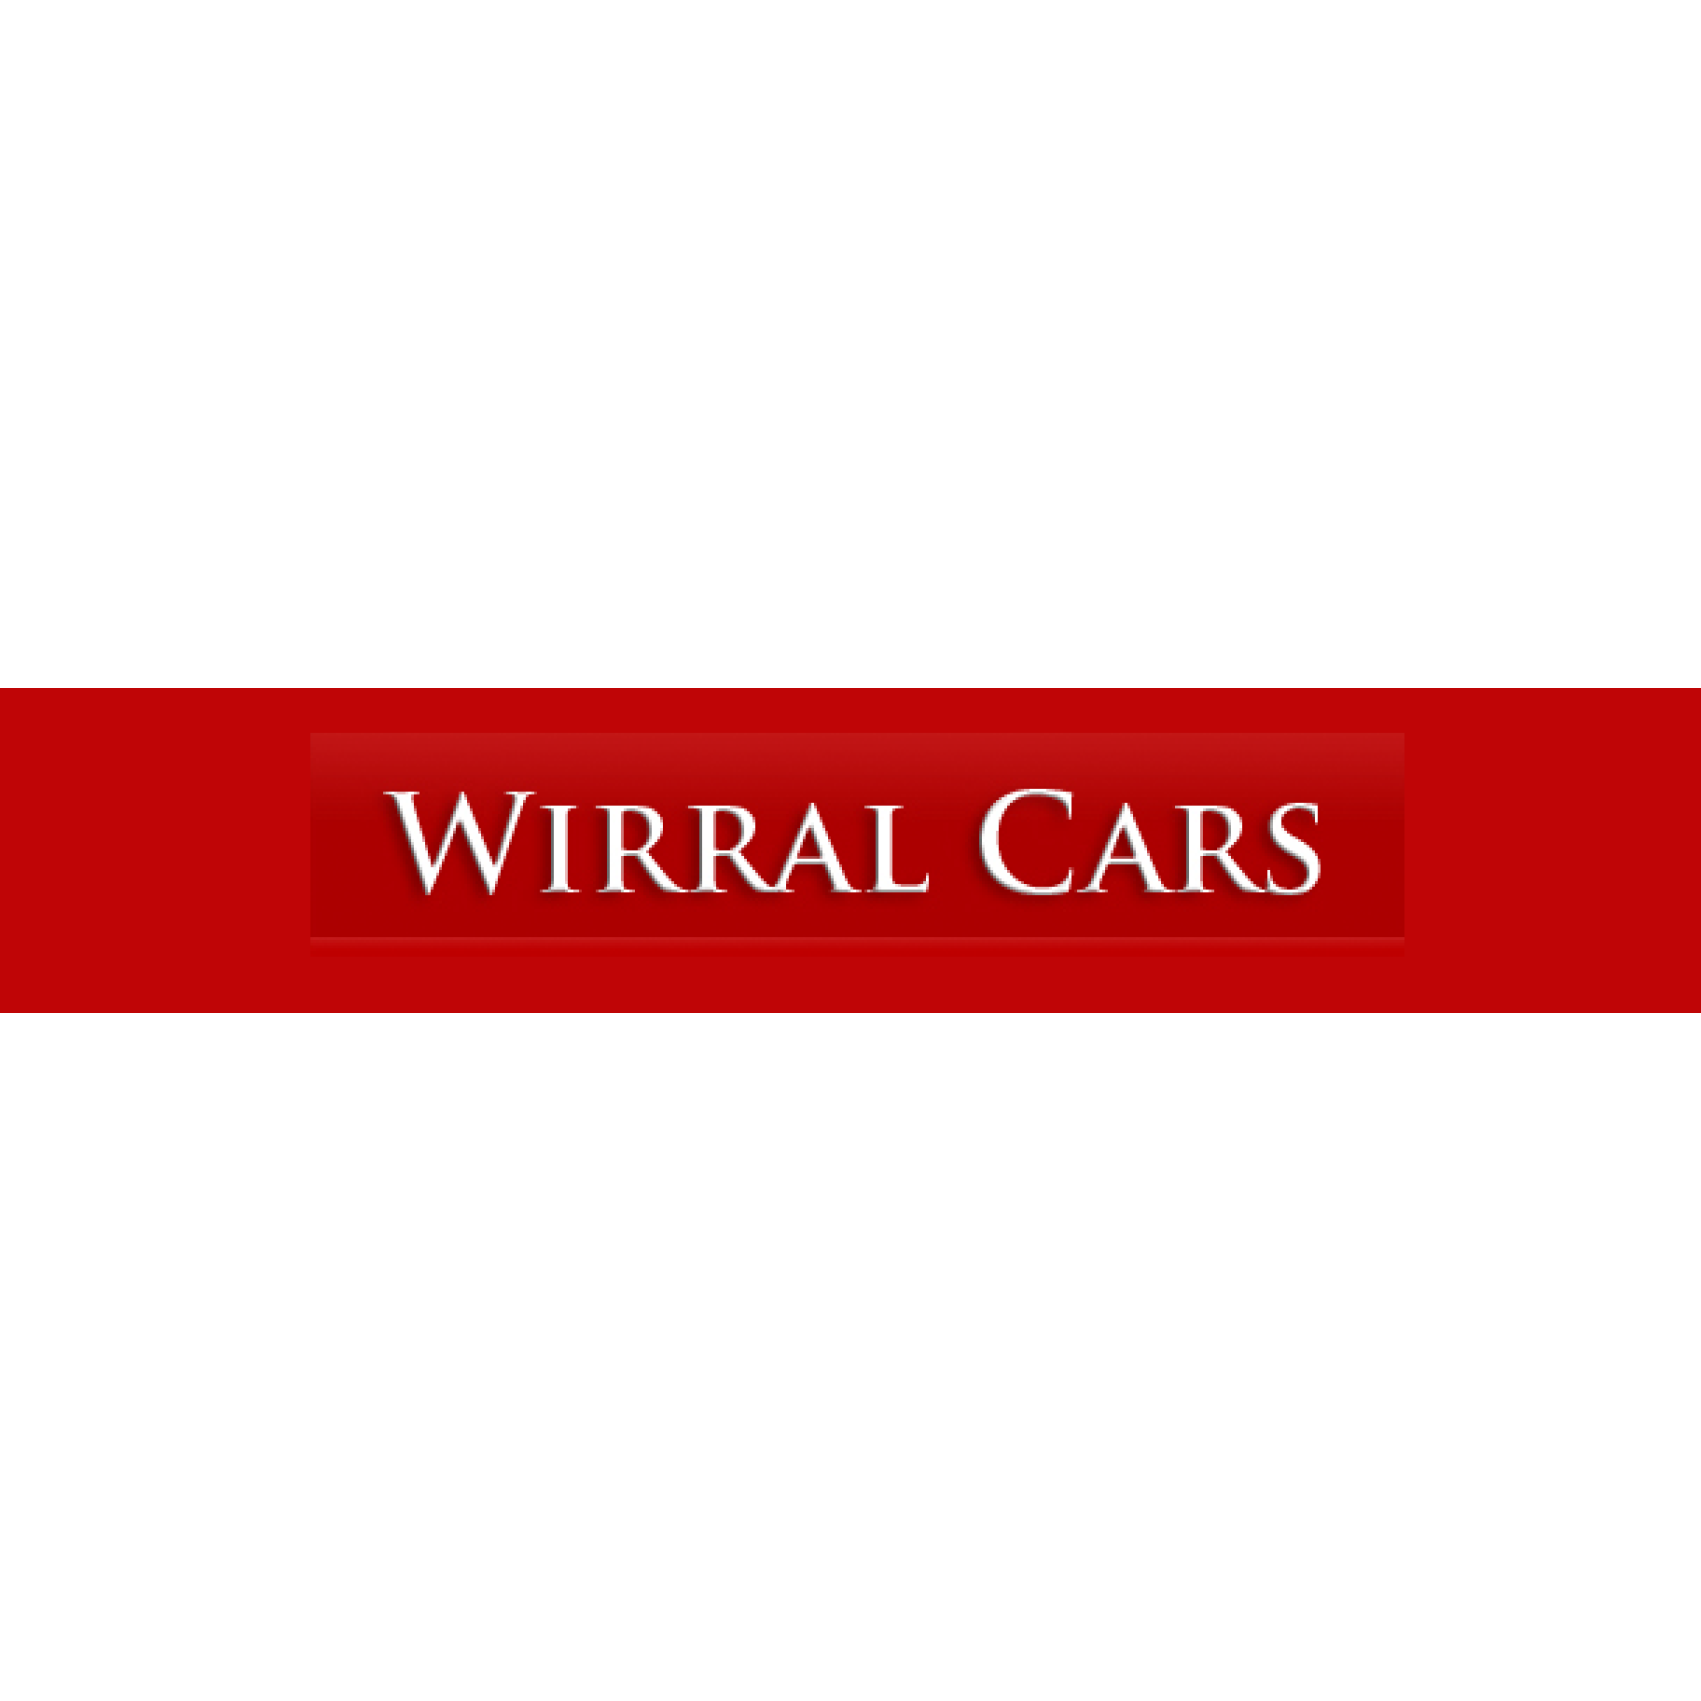 Wirral Cars